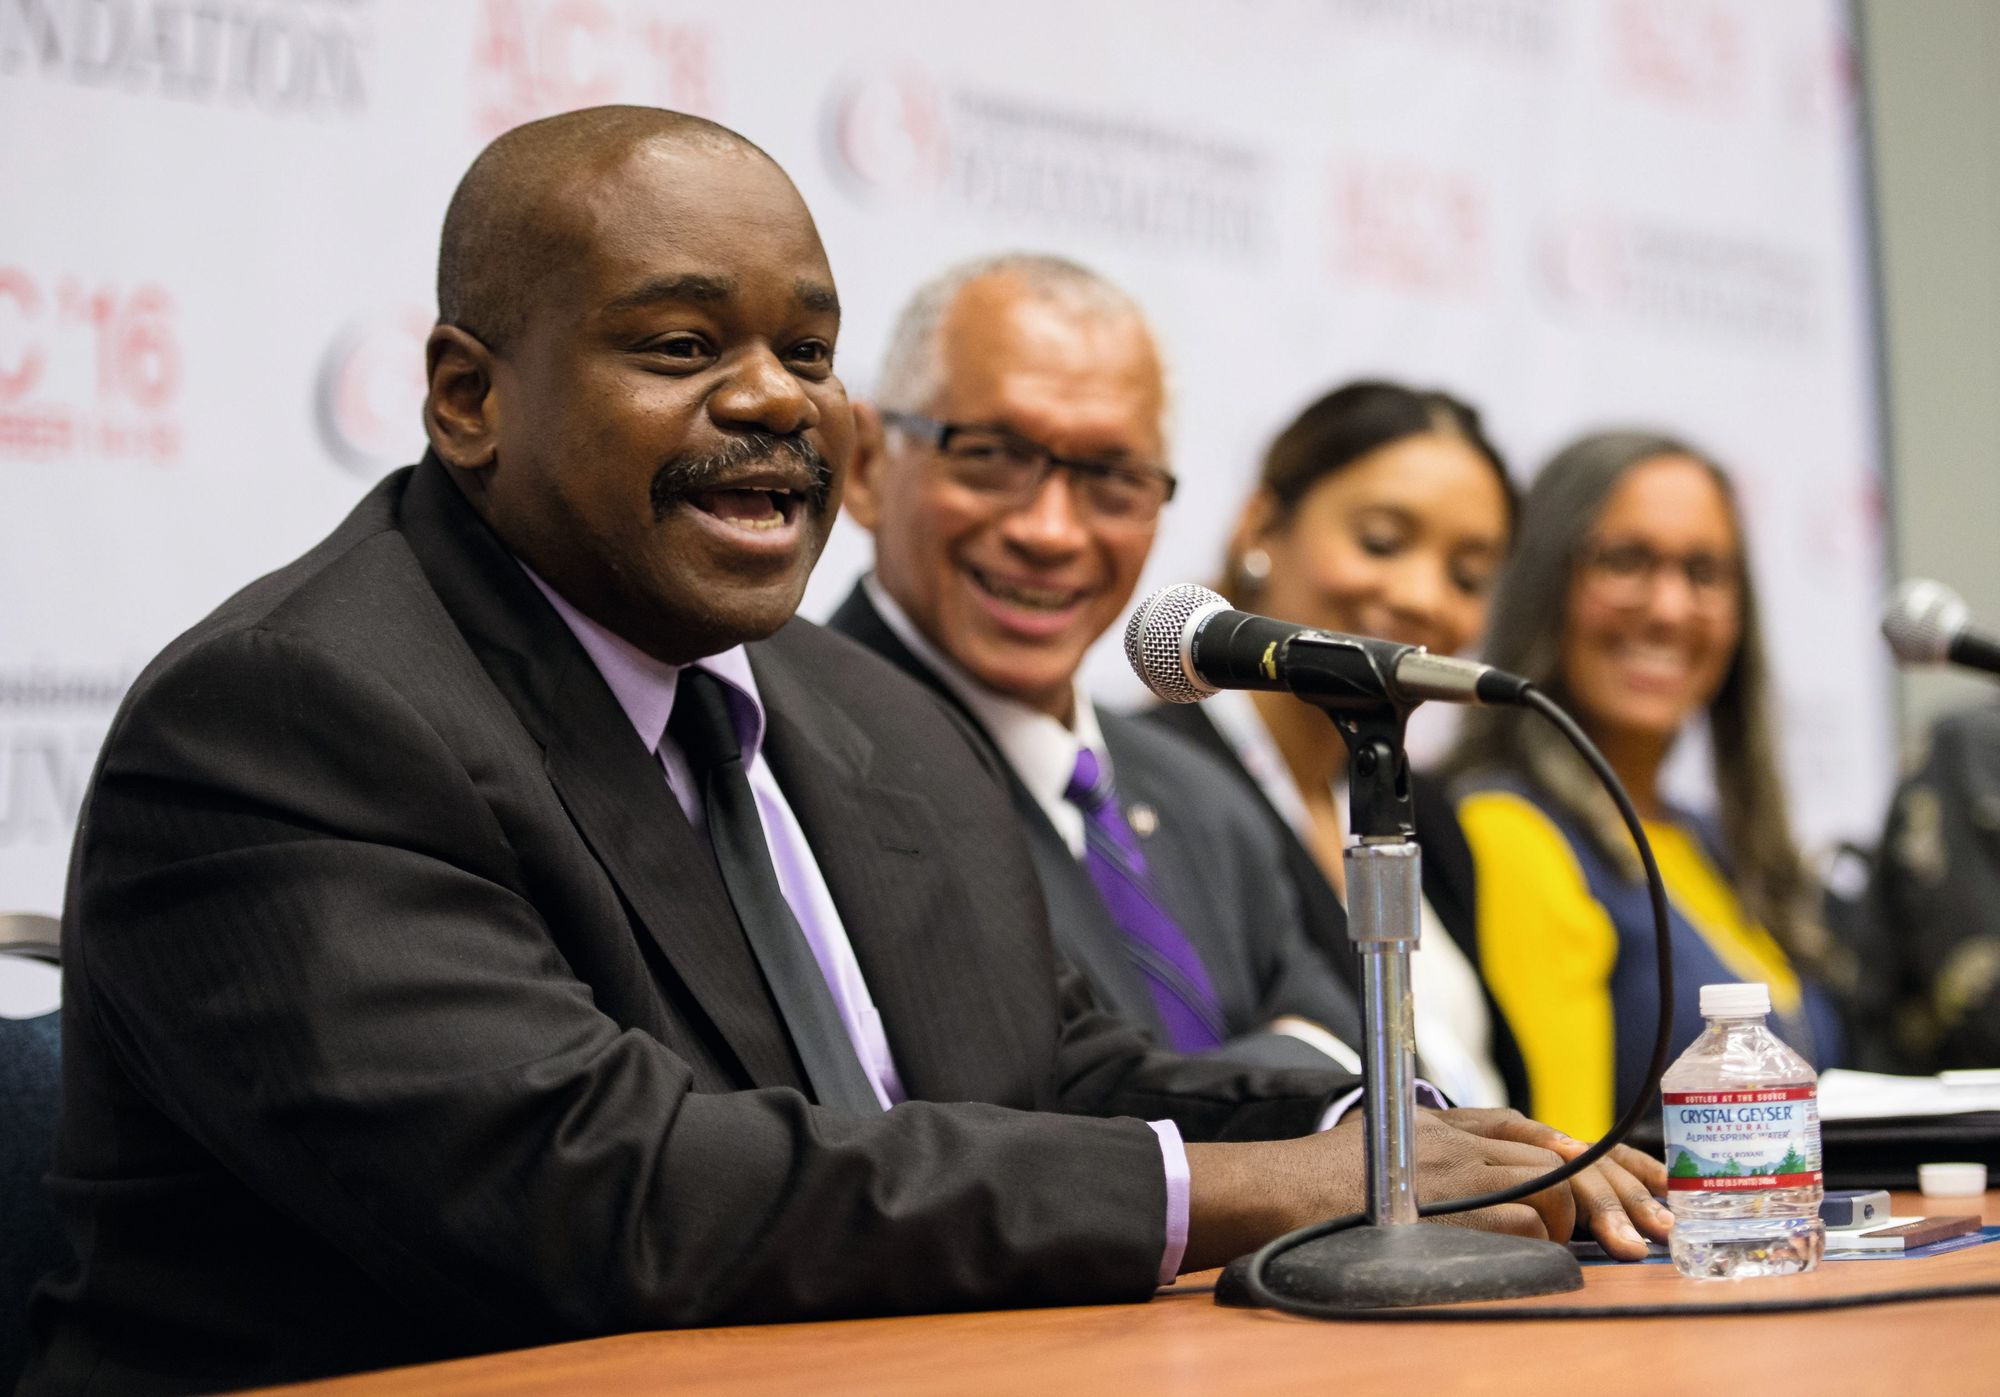 Rudy L. Horne participates in a panel discussion on Women in STEM, 2016.